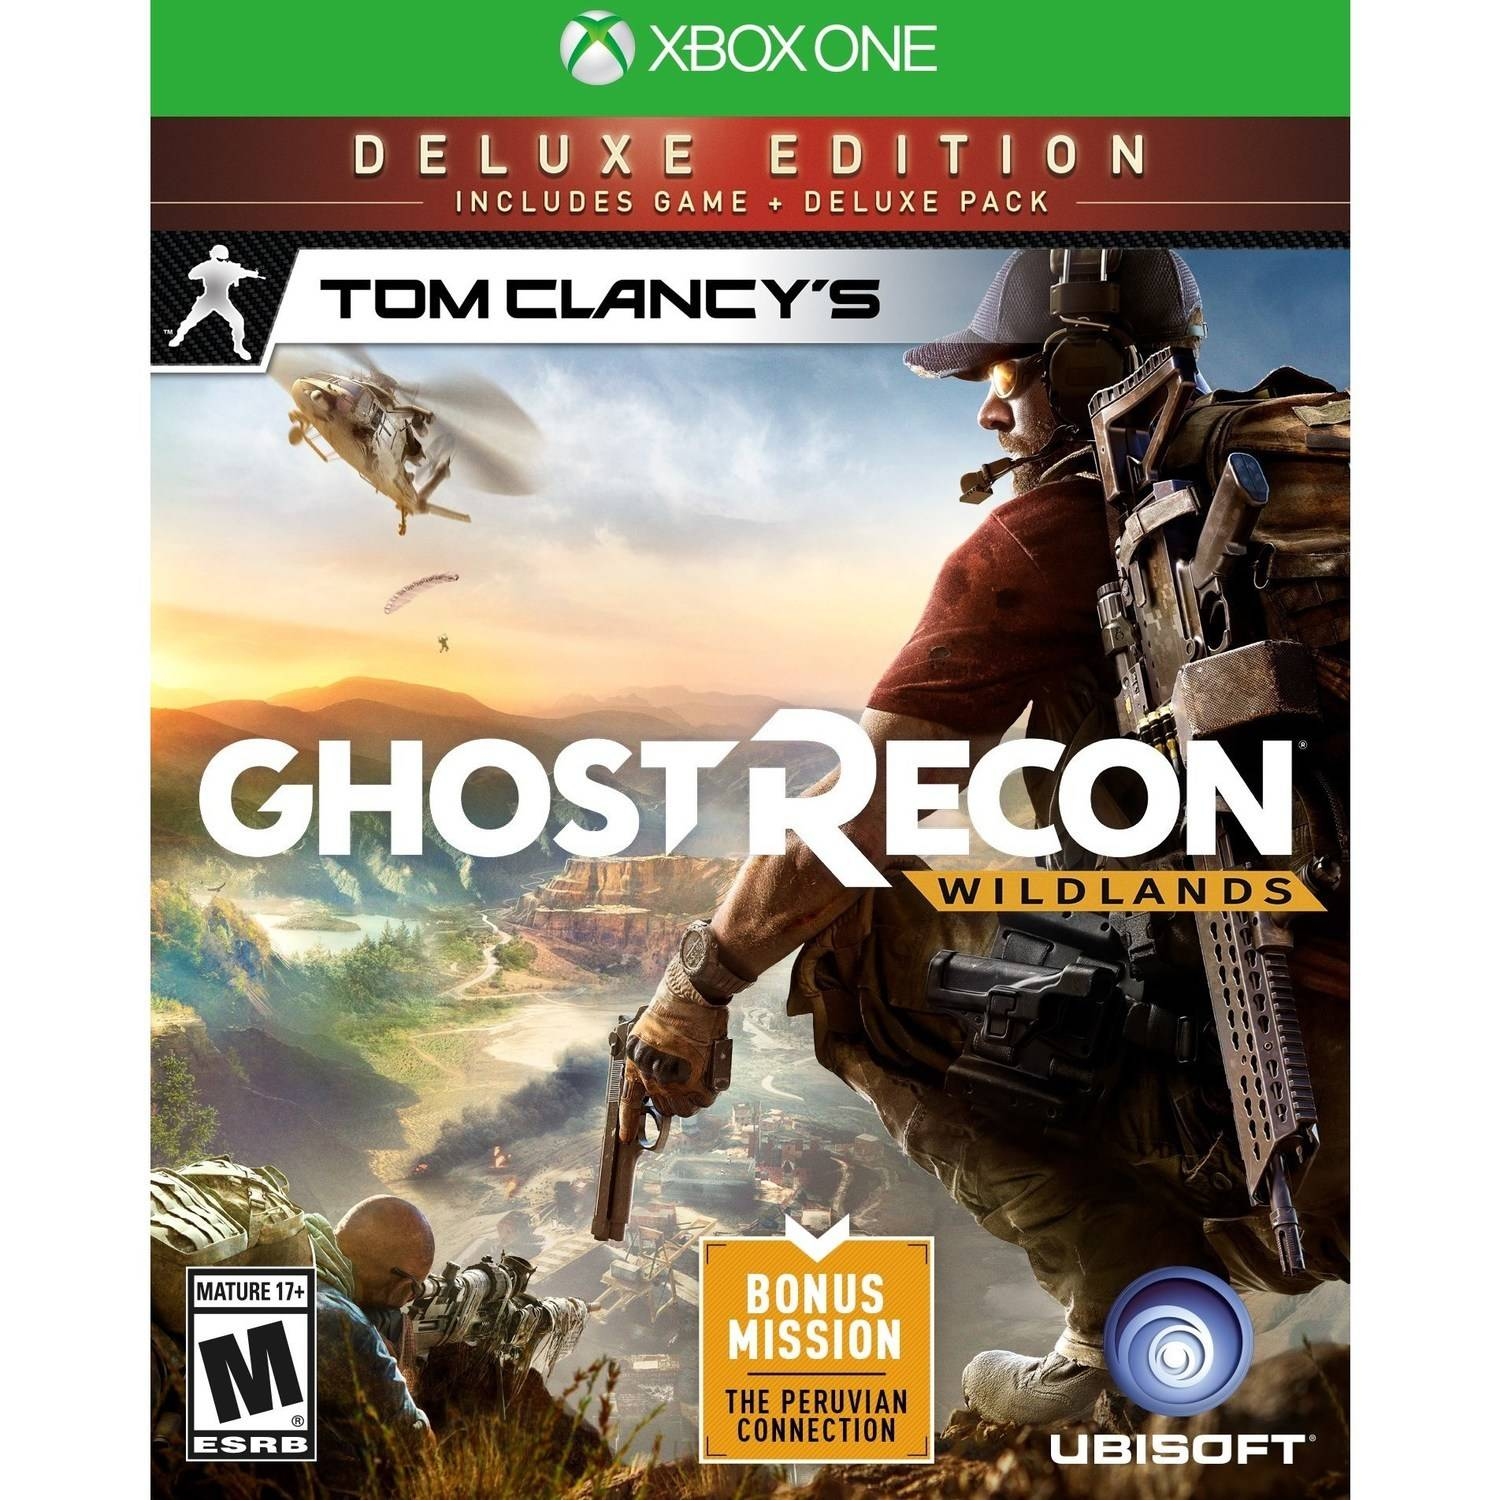 Tom Clancy's Ghost Recon: Wildlands Deluxe Edition, Ubisoft, Xbox One, 887256022747